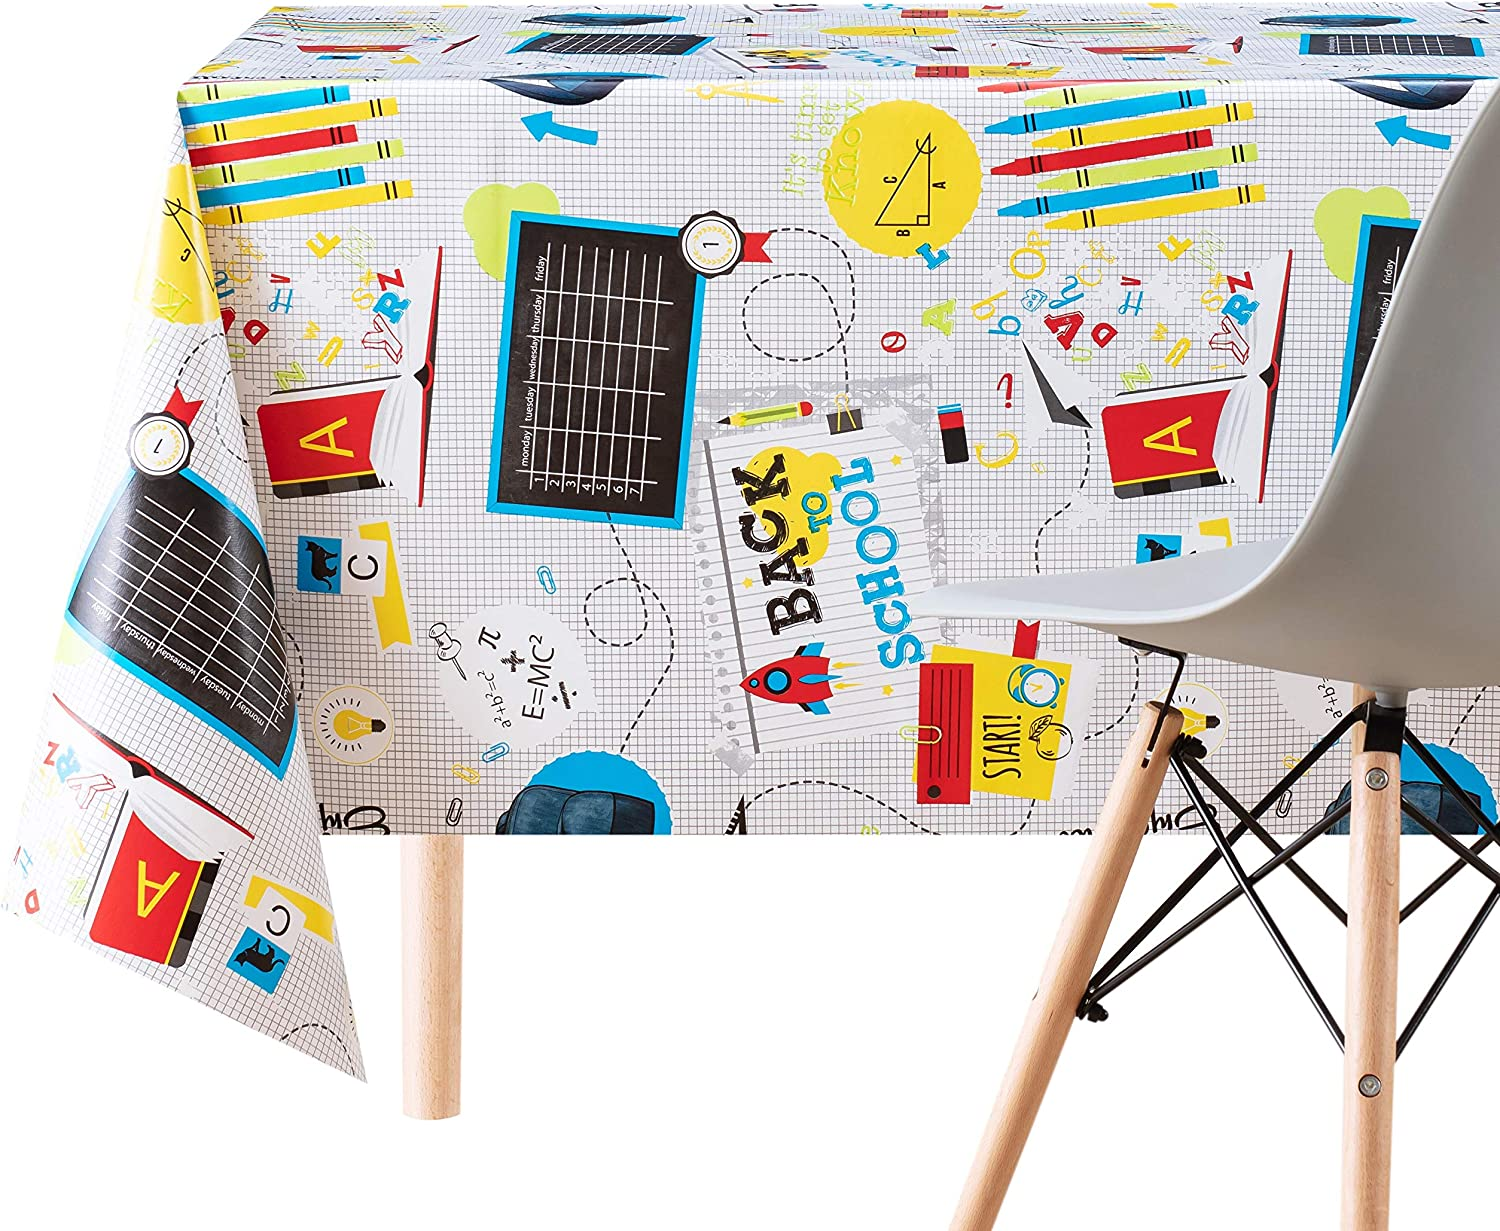 Reusable Colourful And Fun Kids Pvc Wipe Clean Oilcloth Tablecloth 200x140cm Thick Rectangular Wipeable Vinyl Plastic Table Cloth With Glossy Finish Great For Children School Amazon Co Uk Kitchen Home